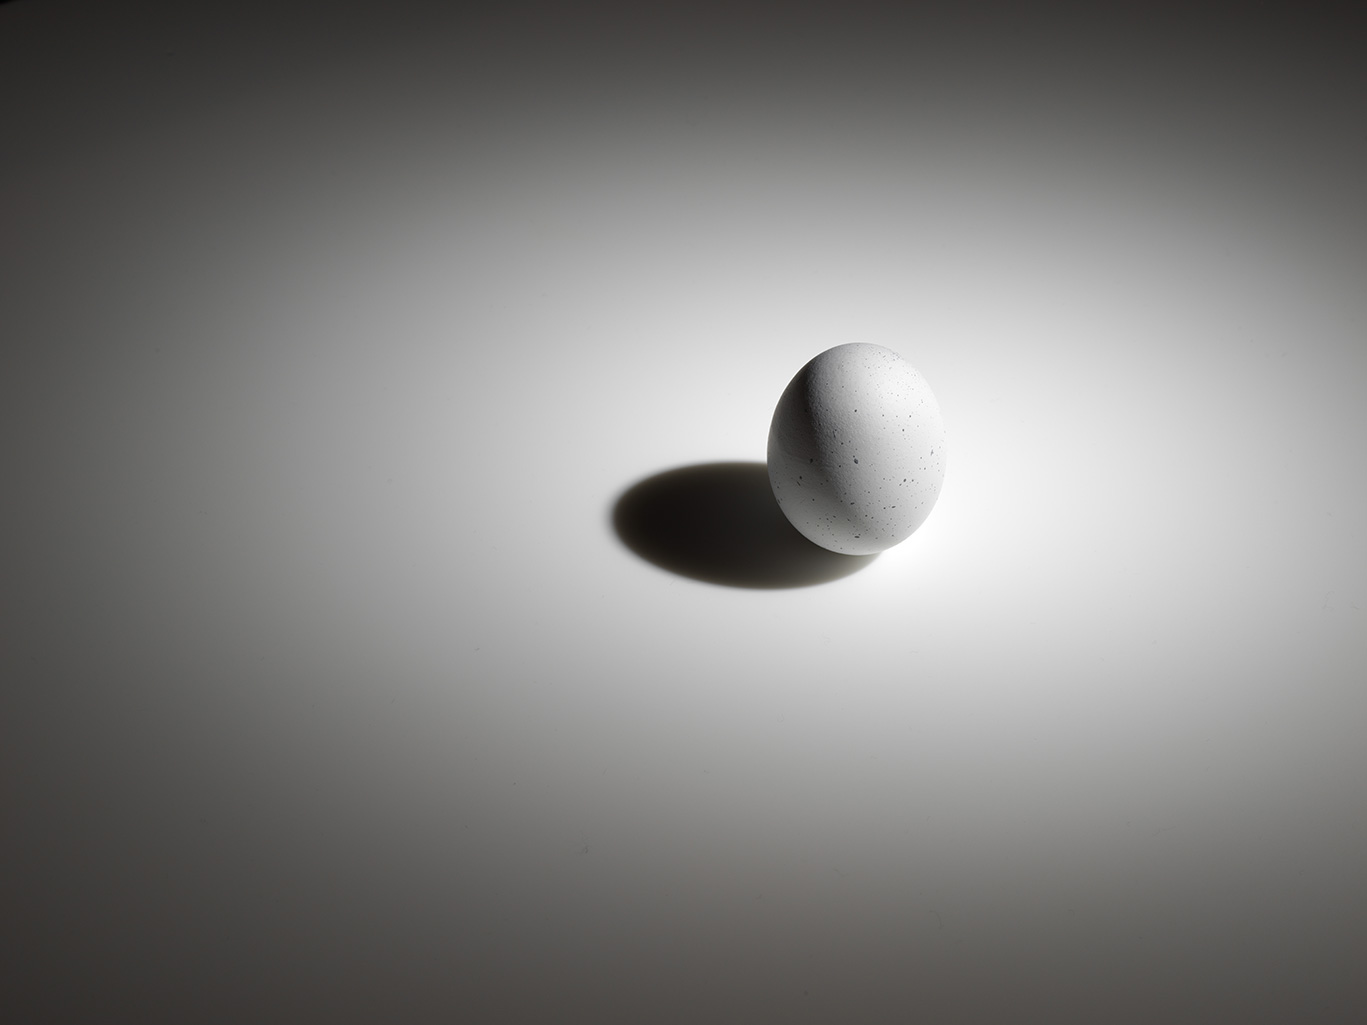 Example of still life photography. Moody still life photo of an egg